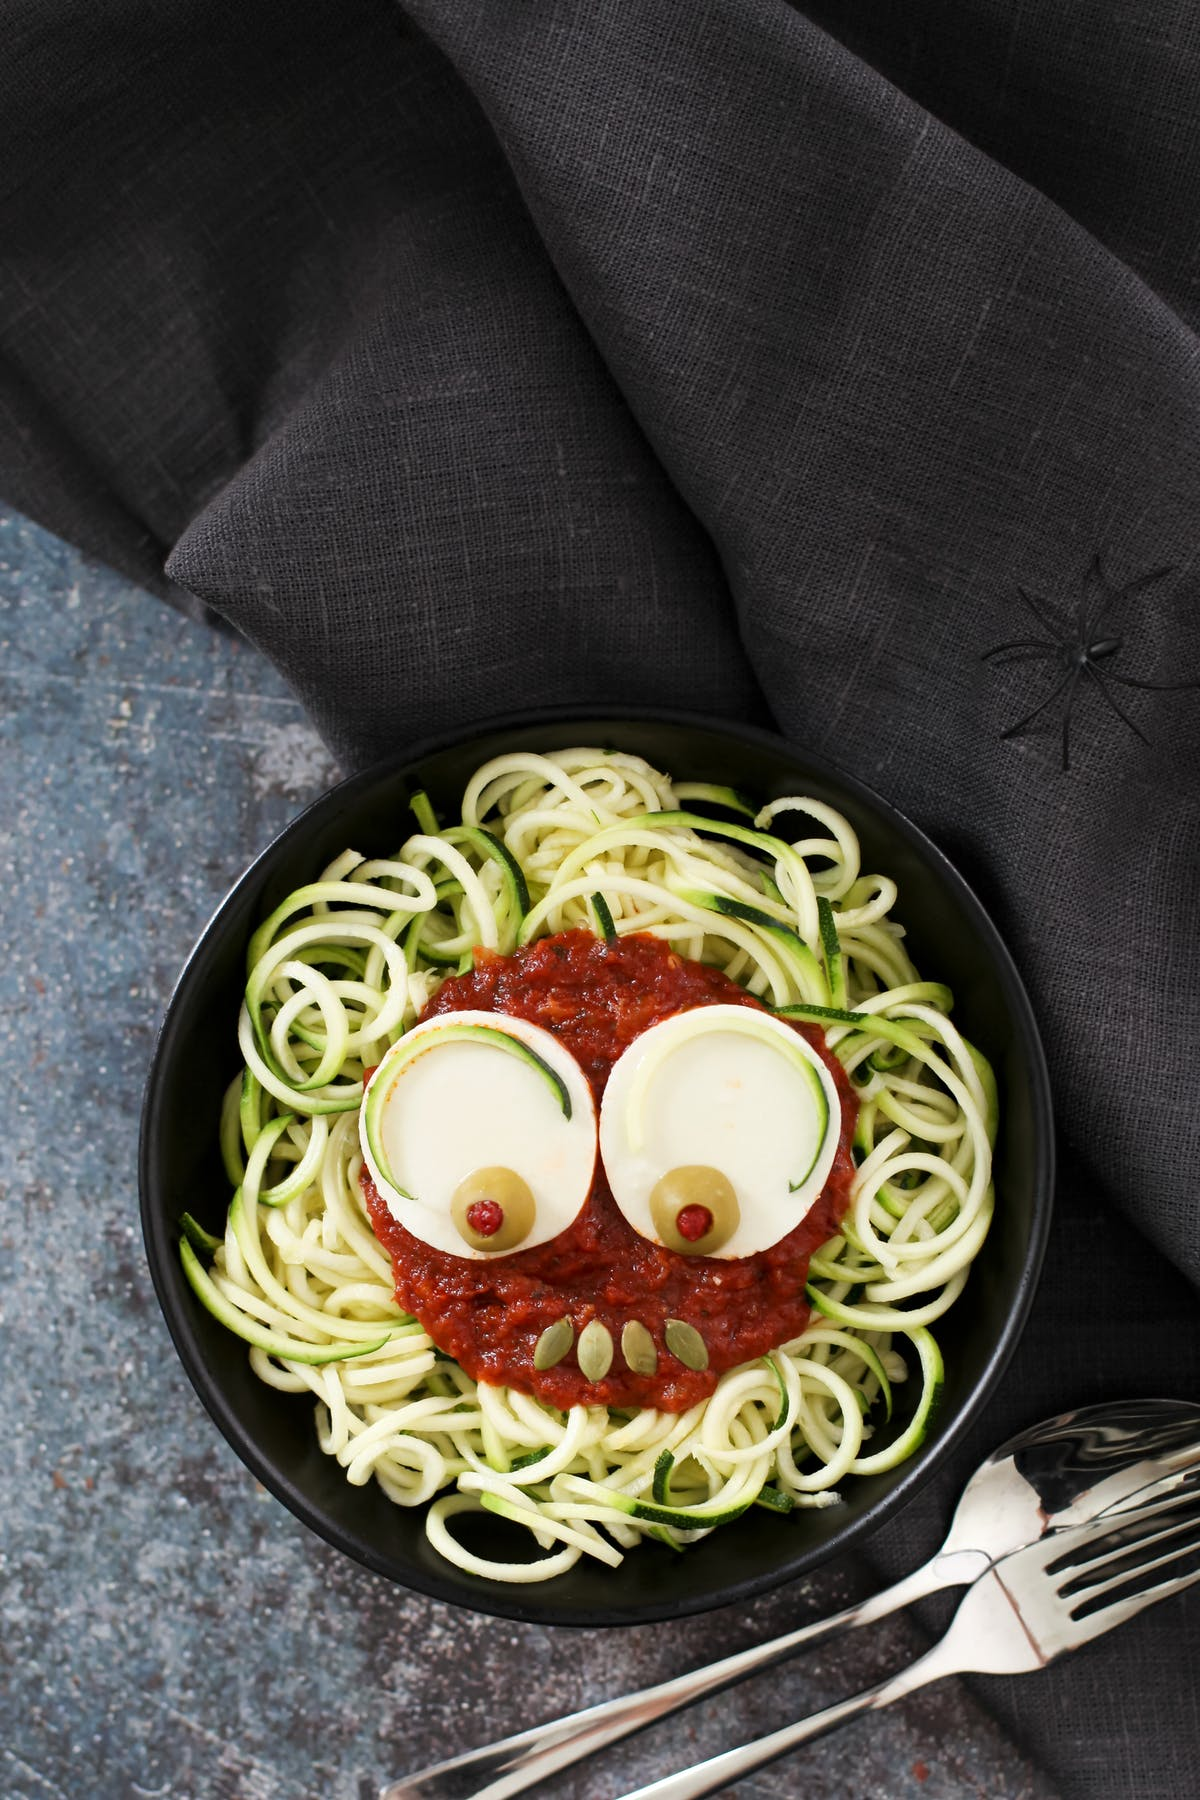 Spooky zoodles with tomato sauce and mozzarella